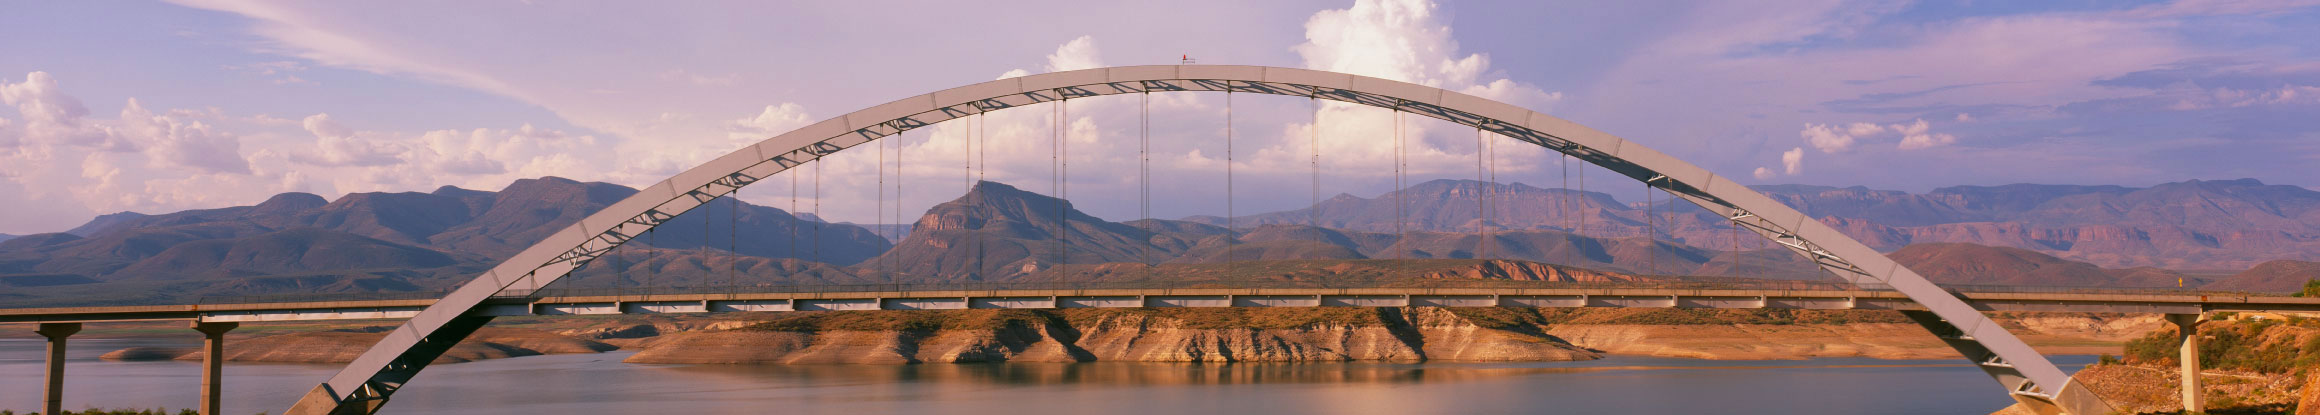 AIF Global arc bridge with mountains in background